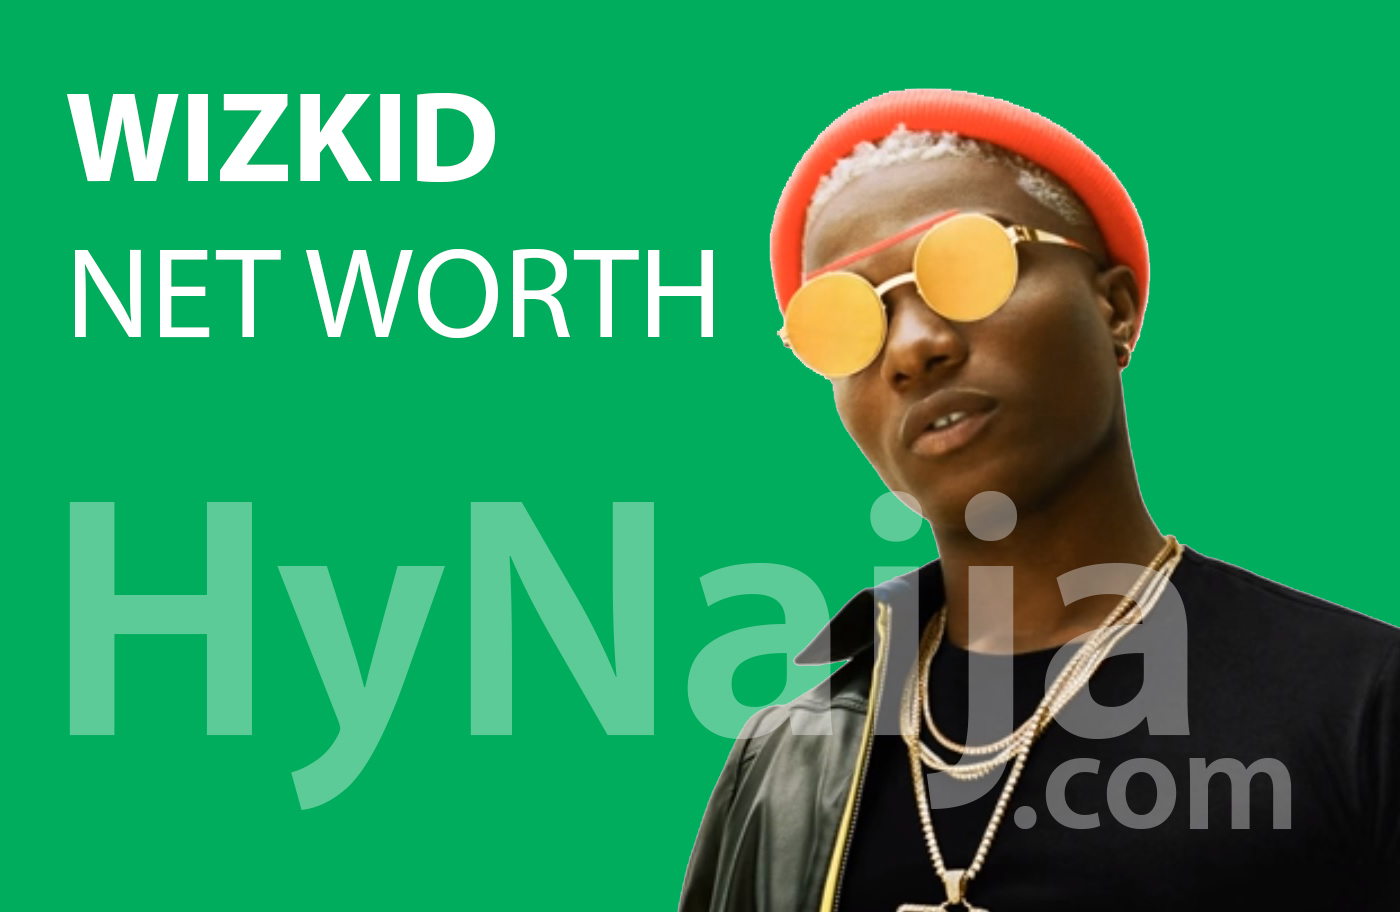 Wizkid Biography, Net Worth, Birth, Family, Quotes and Education